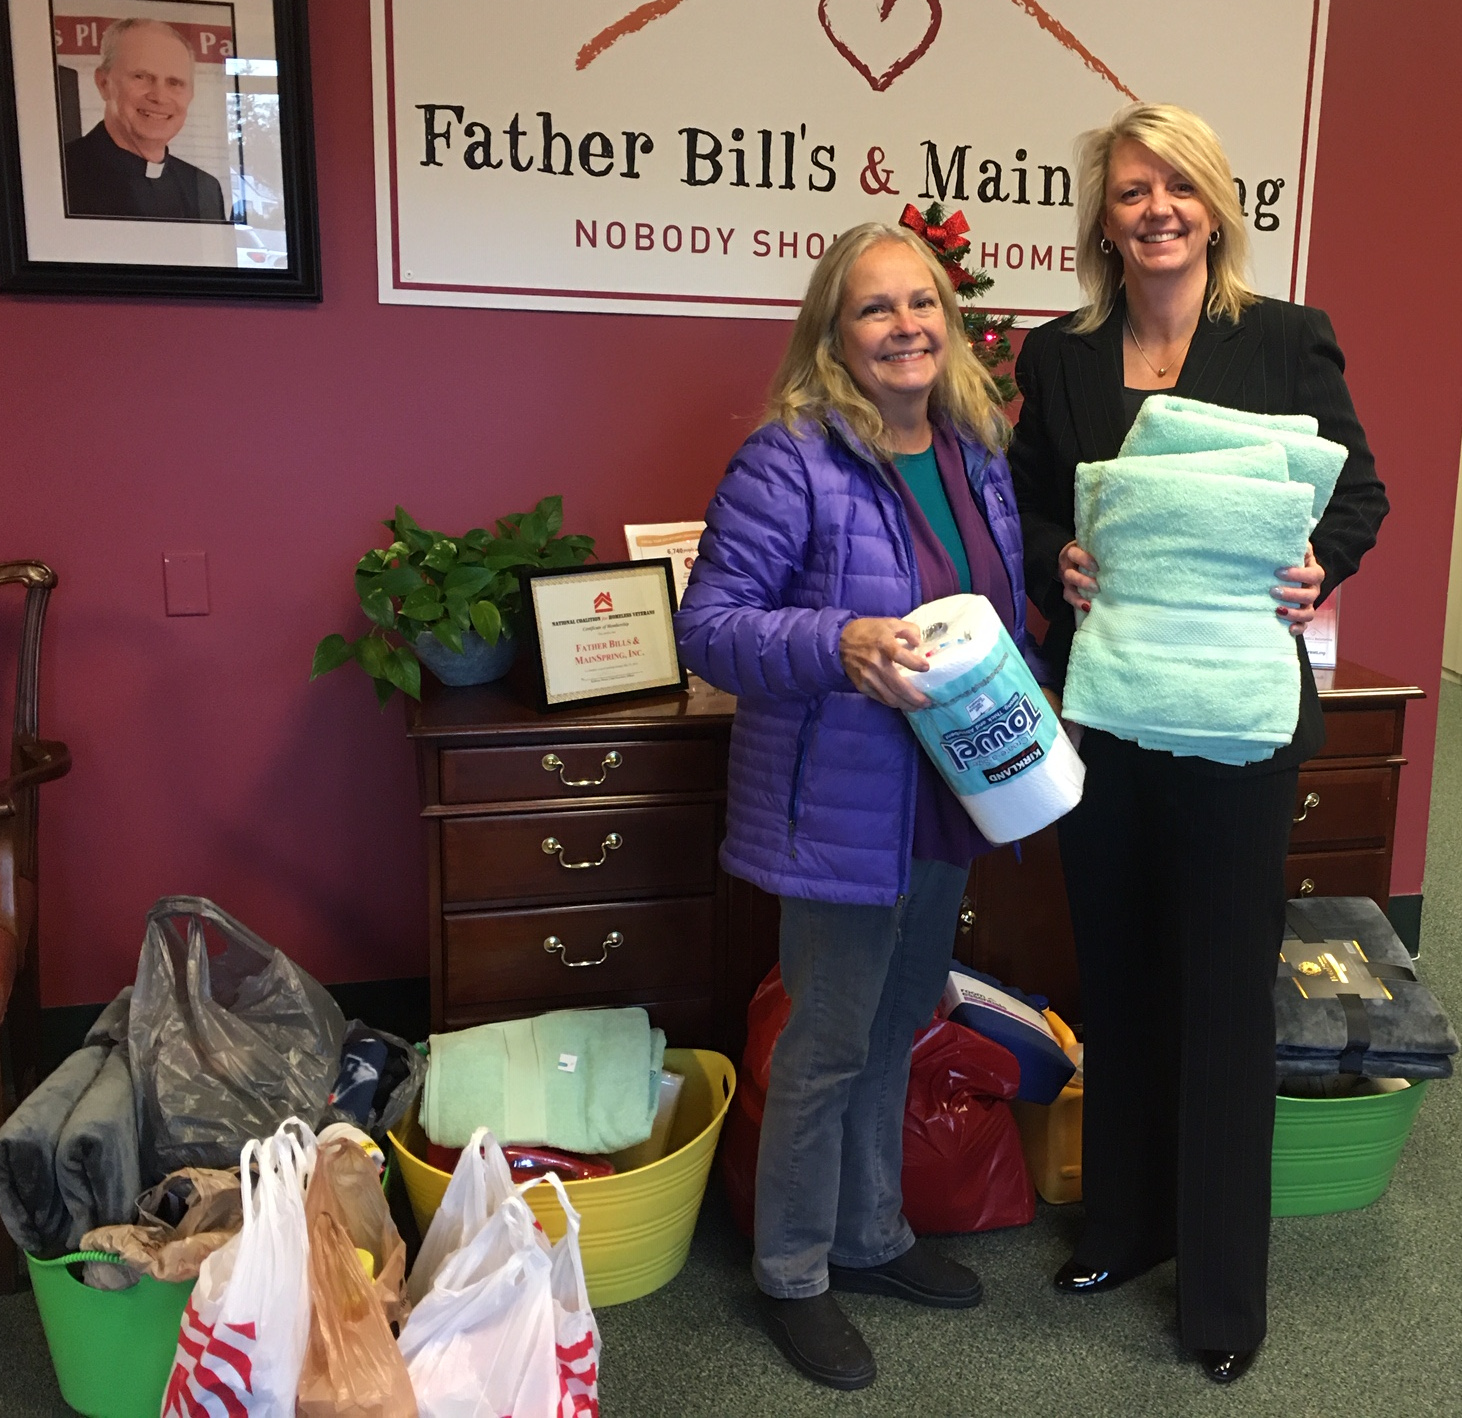 a picture of a woman holding some paper towels, surrounded by donations with a woman from Father Bills